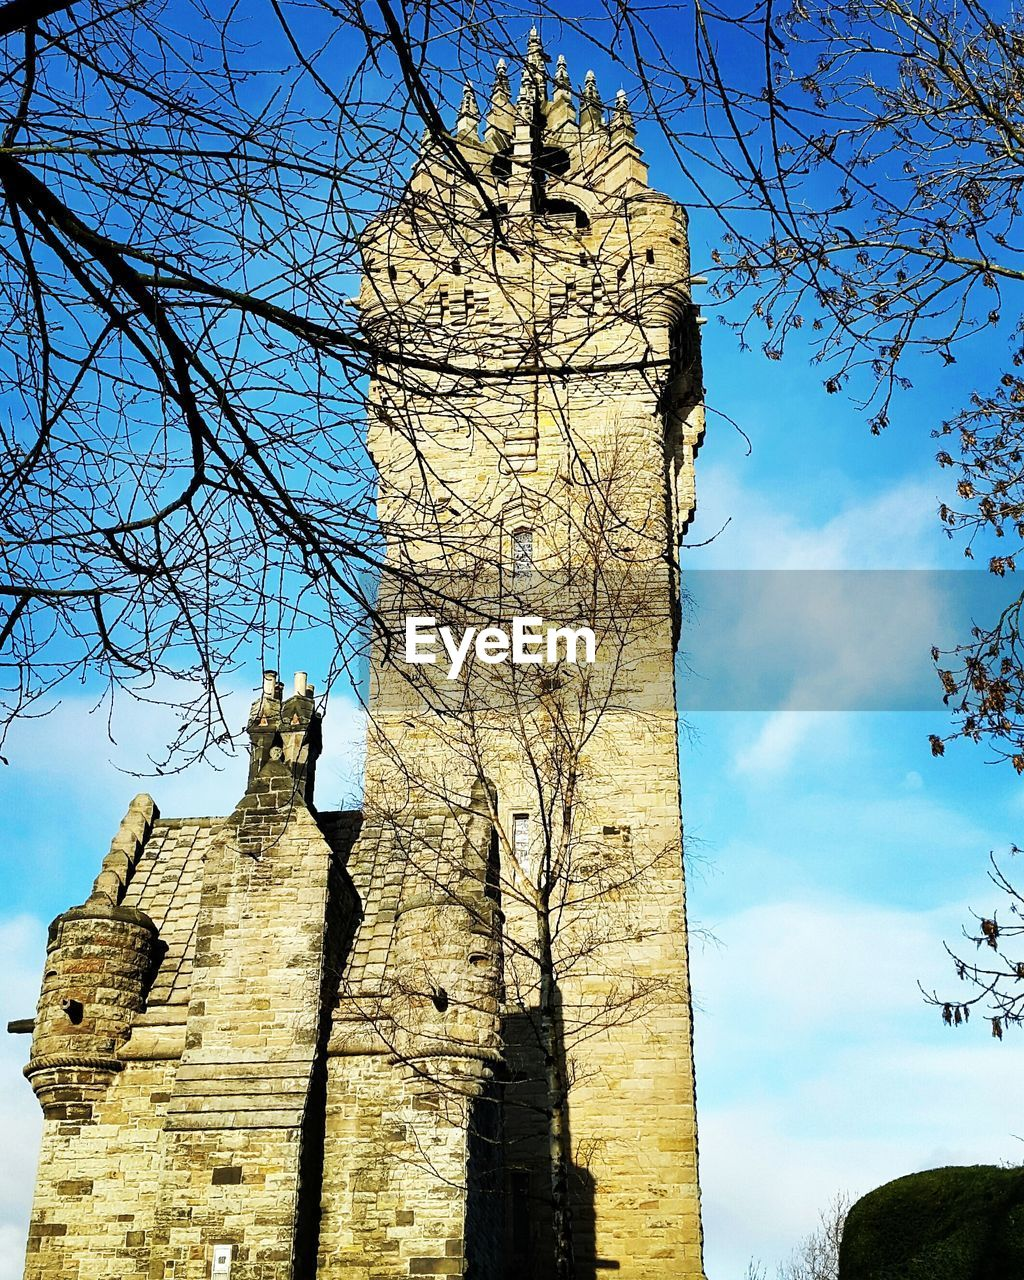 architecture, low angle view, built structure, history, old ruin, building exterior, bare tree, day, sky, the past, tree, ancient, place of worship, religion, spirituality, ancient civilization, no people, damaged, branch, outdoors, travel destinations, sunlight